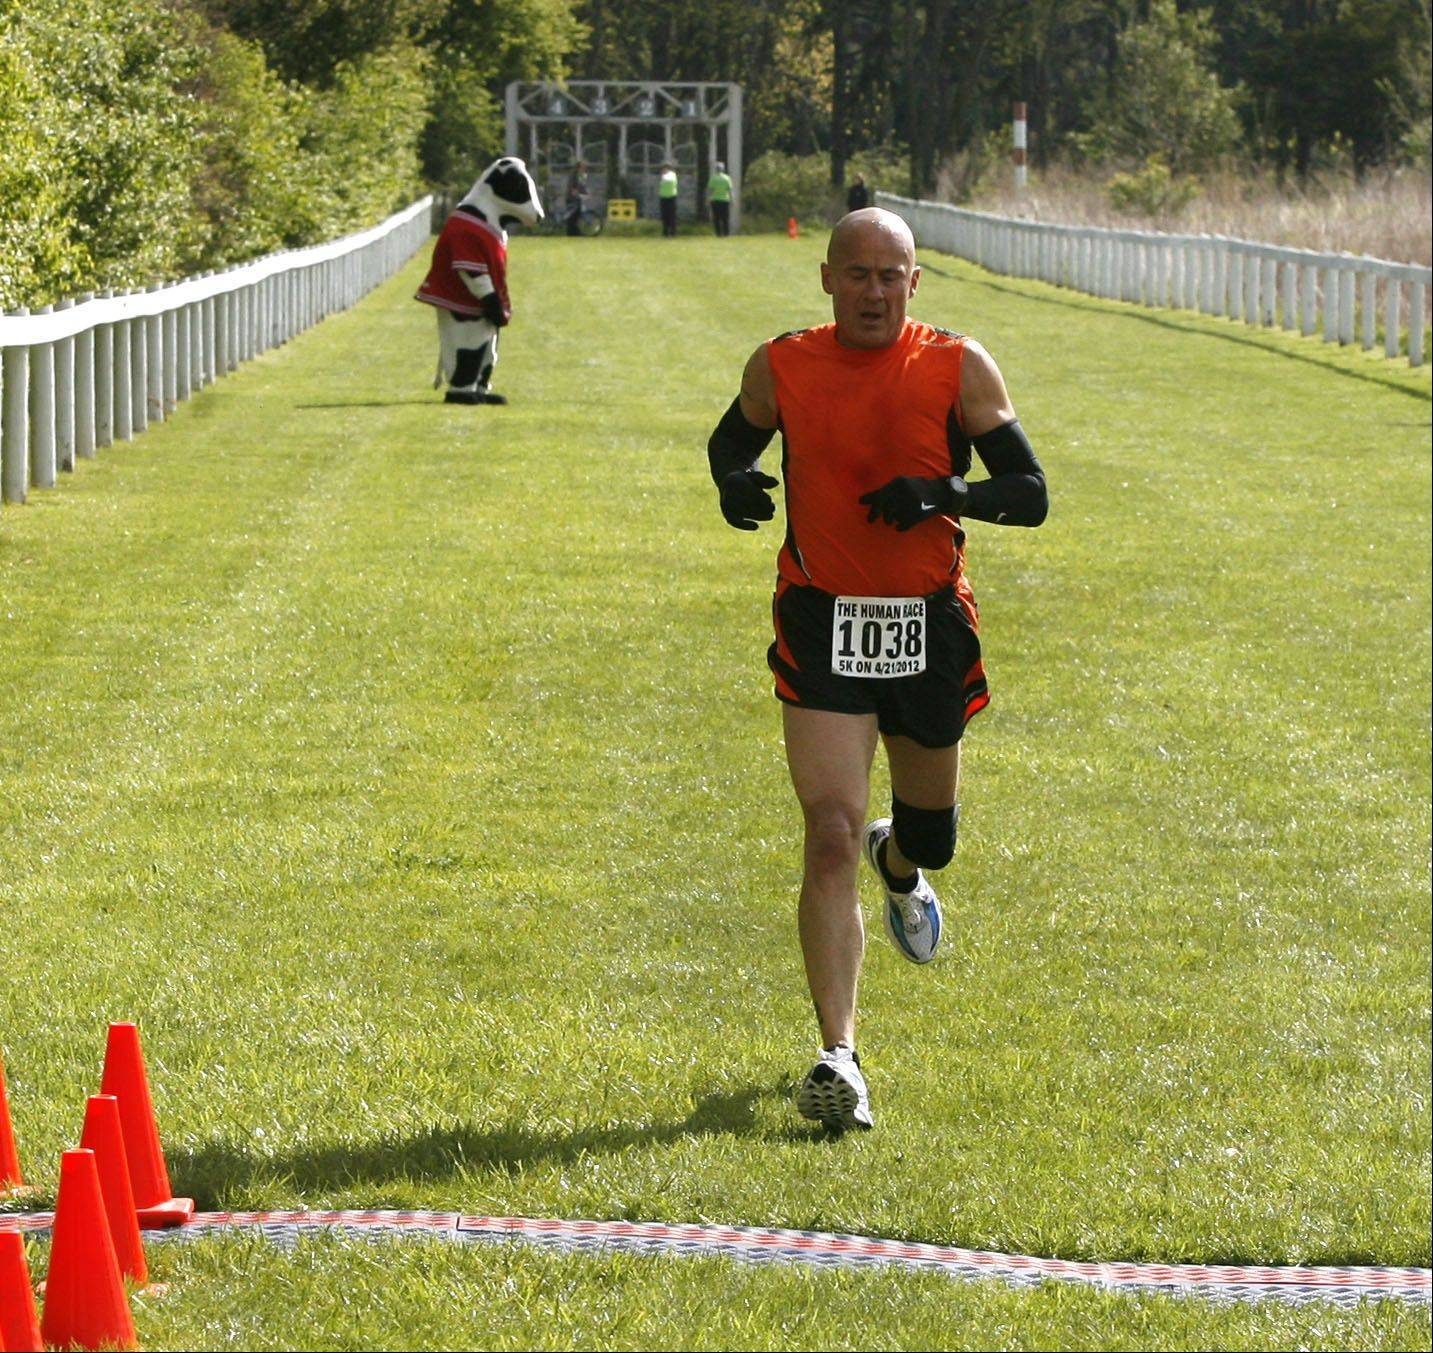 Barry Brandt, 54, of Villa Park wins the inaugural Human Race, a 5K run and 2-mile walk held Saturday in Danada Forest Preserve. A total of 1,000 runners and walkers participated.